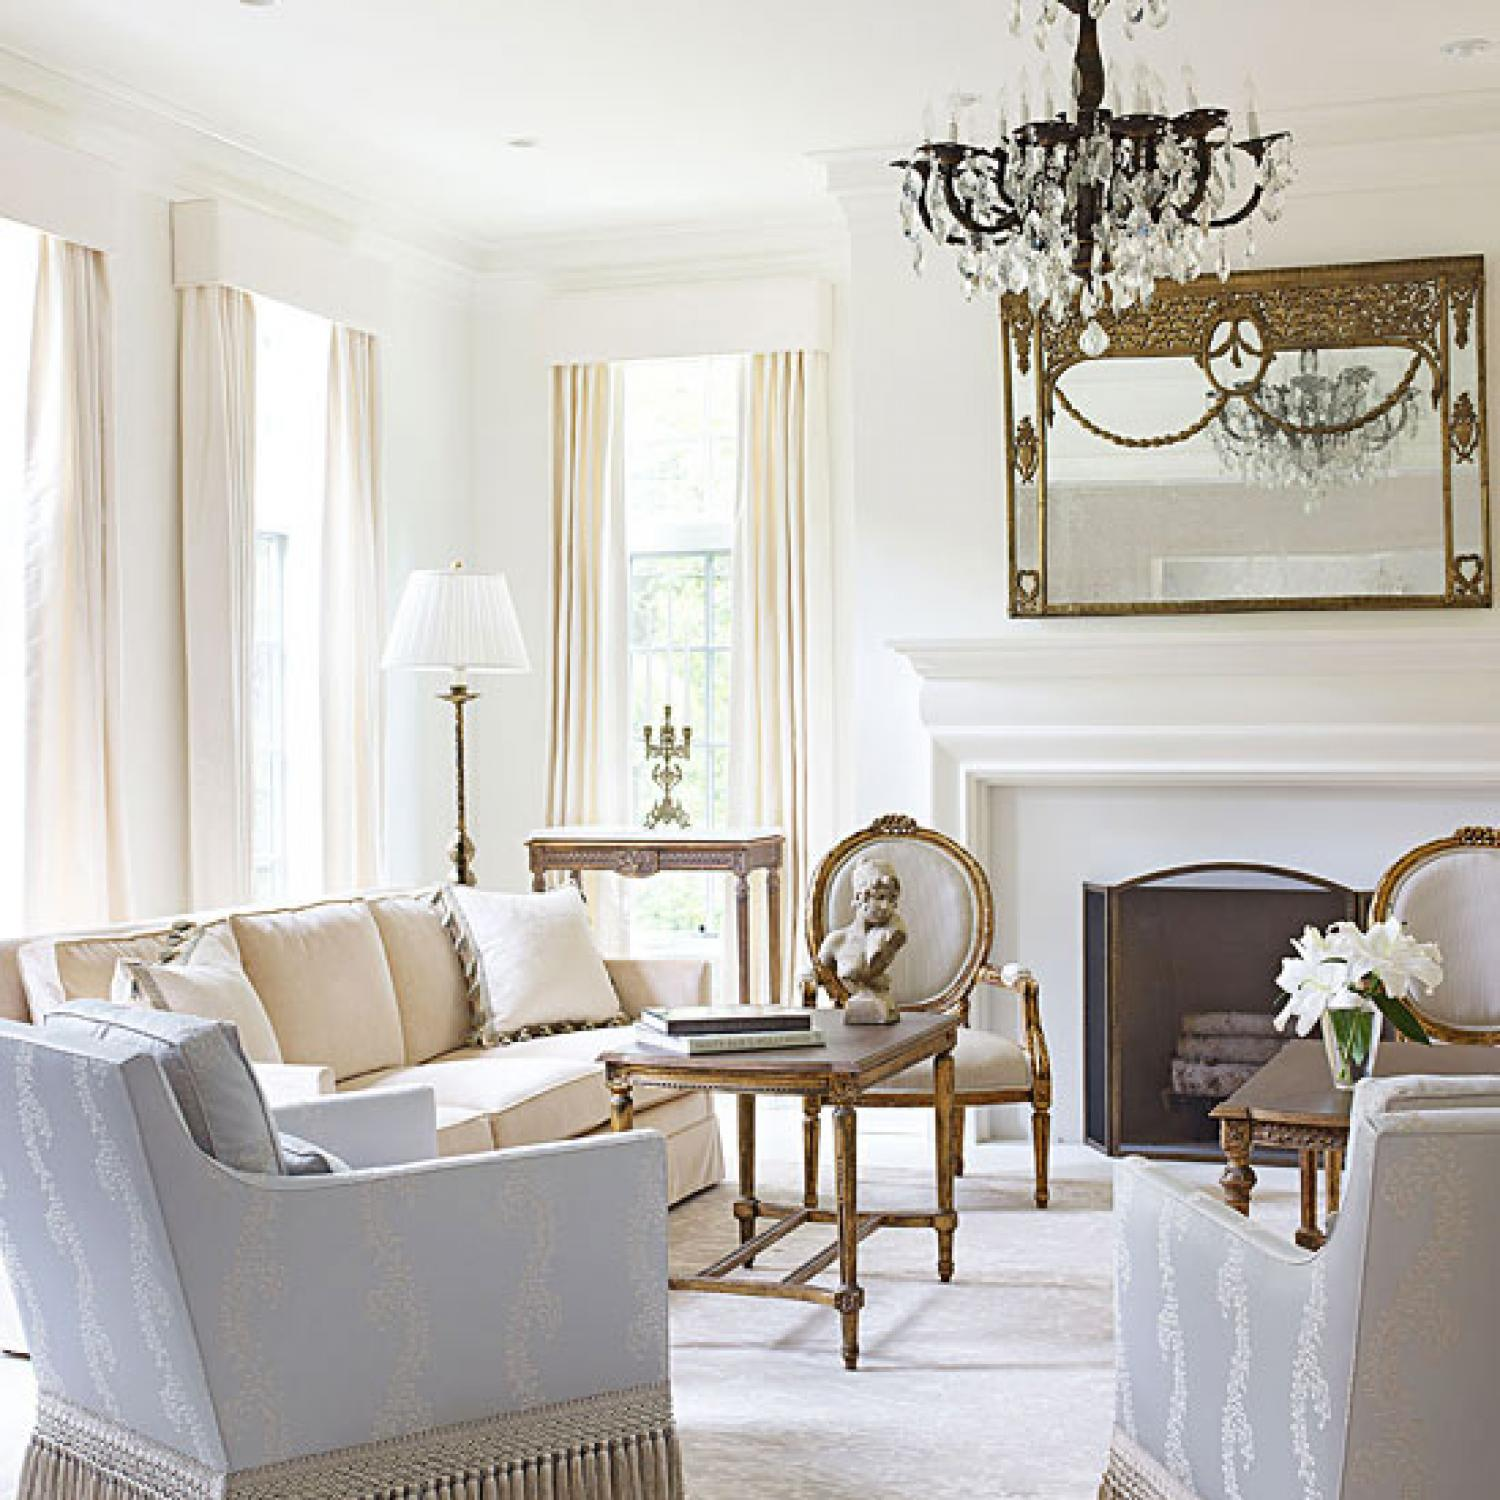 Bright White and Inviting Family Home Traditional